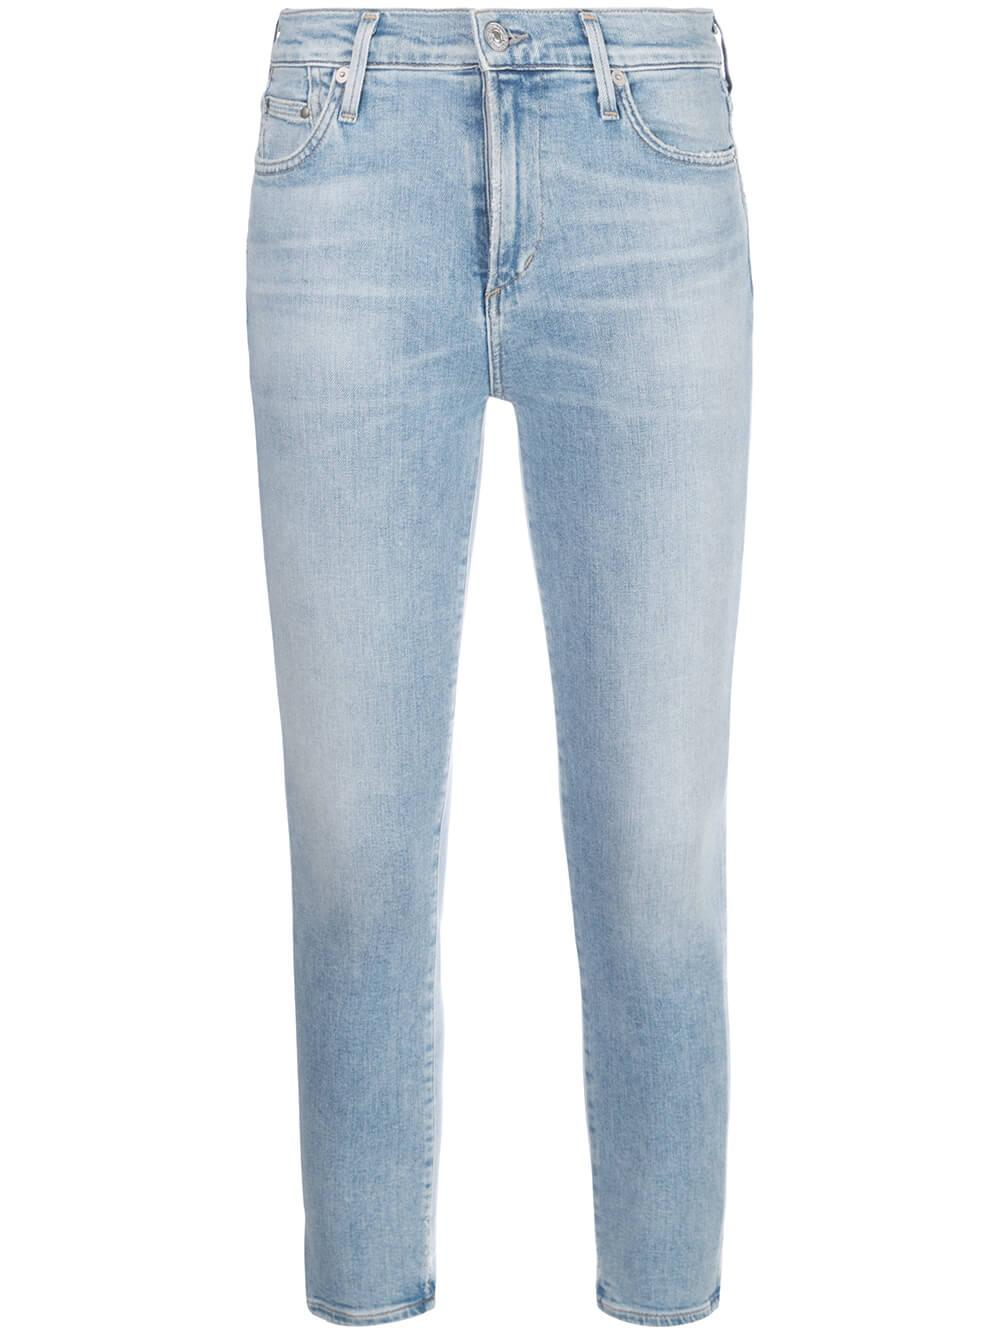 Rocket Crop Light Wash Mid Rise Skinny